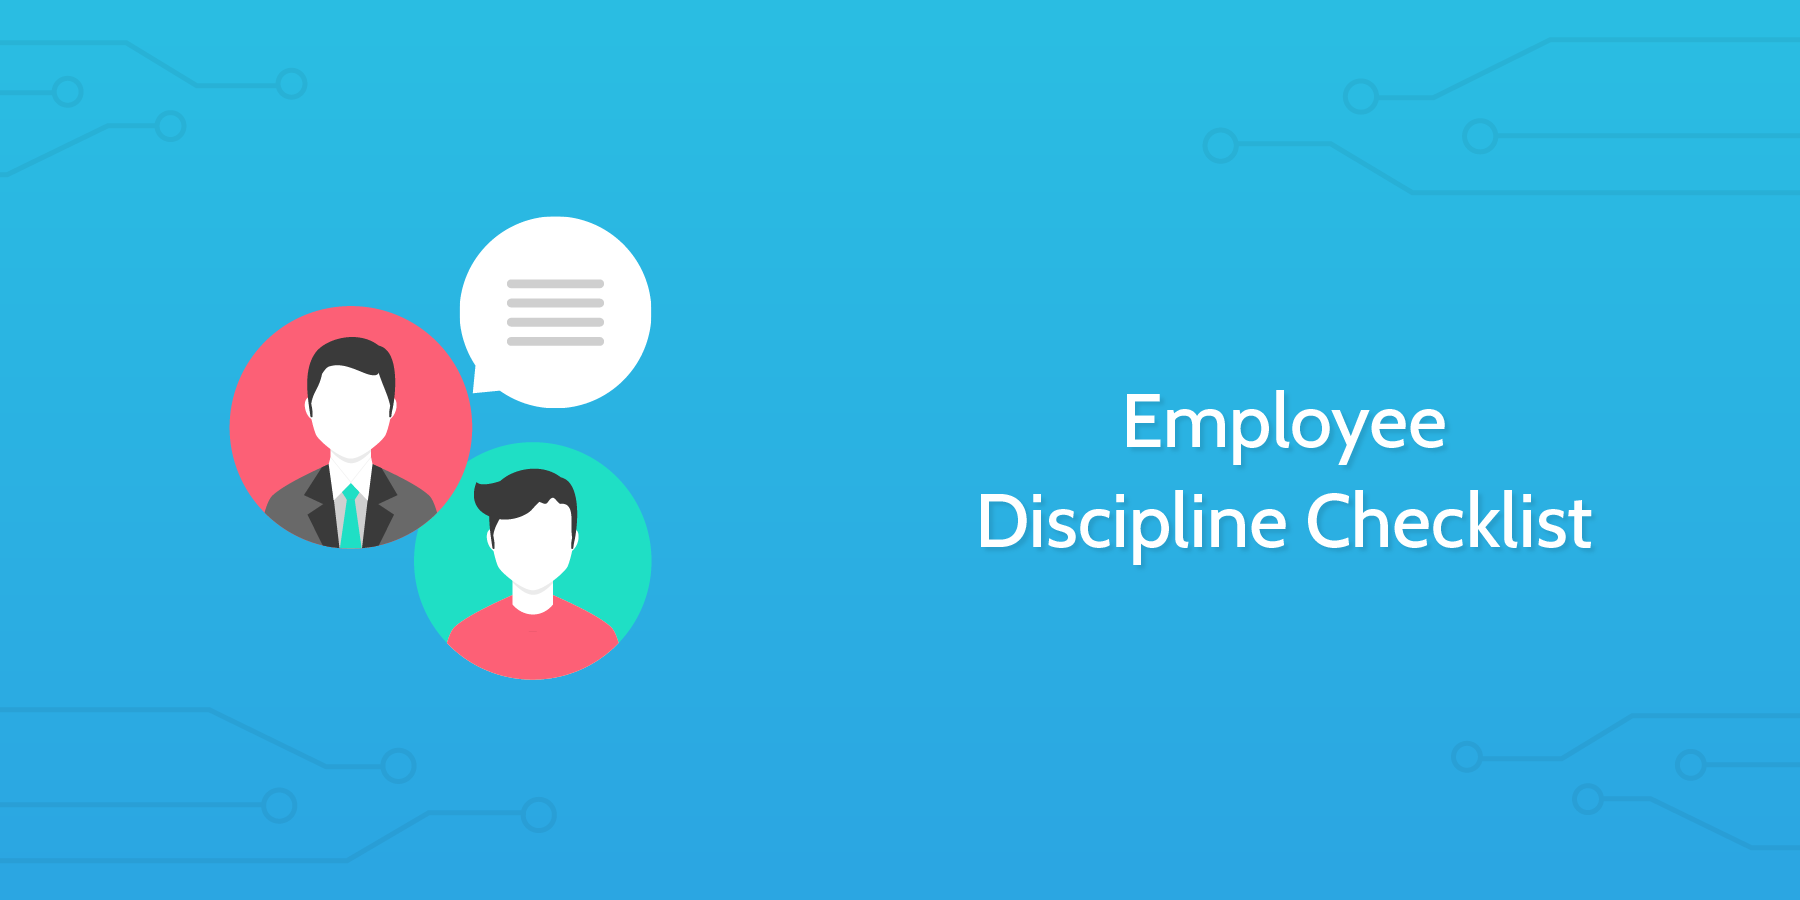 A Checklist for Employee Discipline